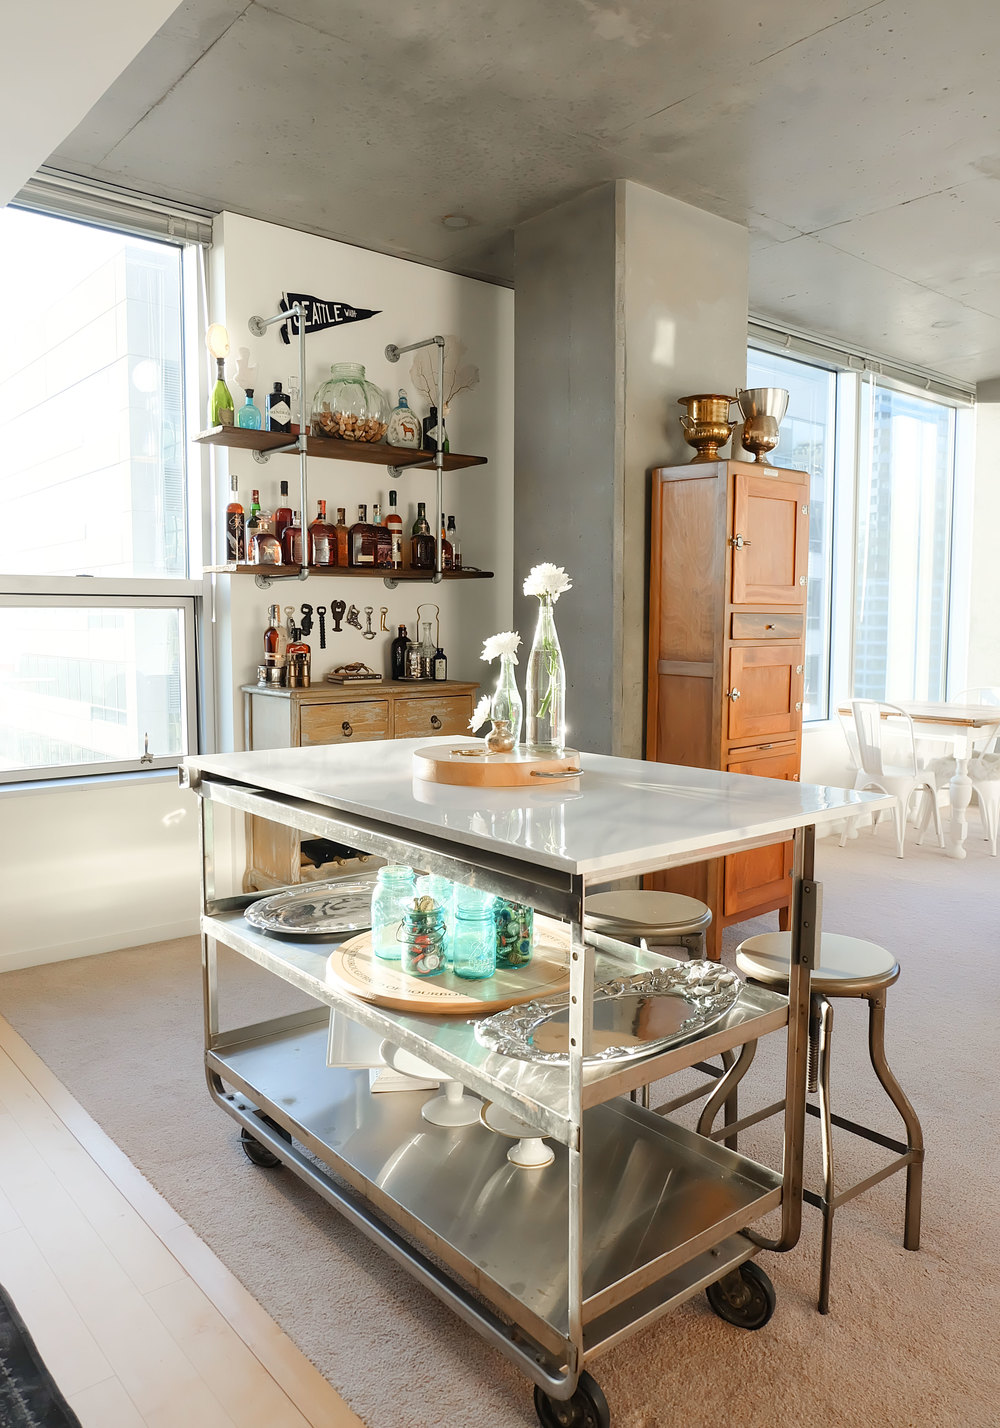 DIY Faux Carrara Marble Countertop, DIY Kitchen Island Cart, Industrial  Loft In Seattle,